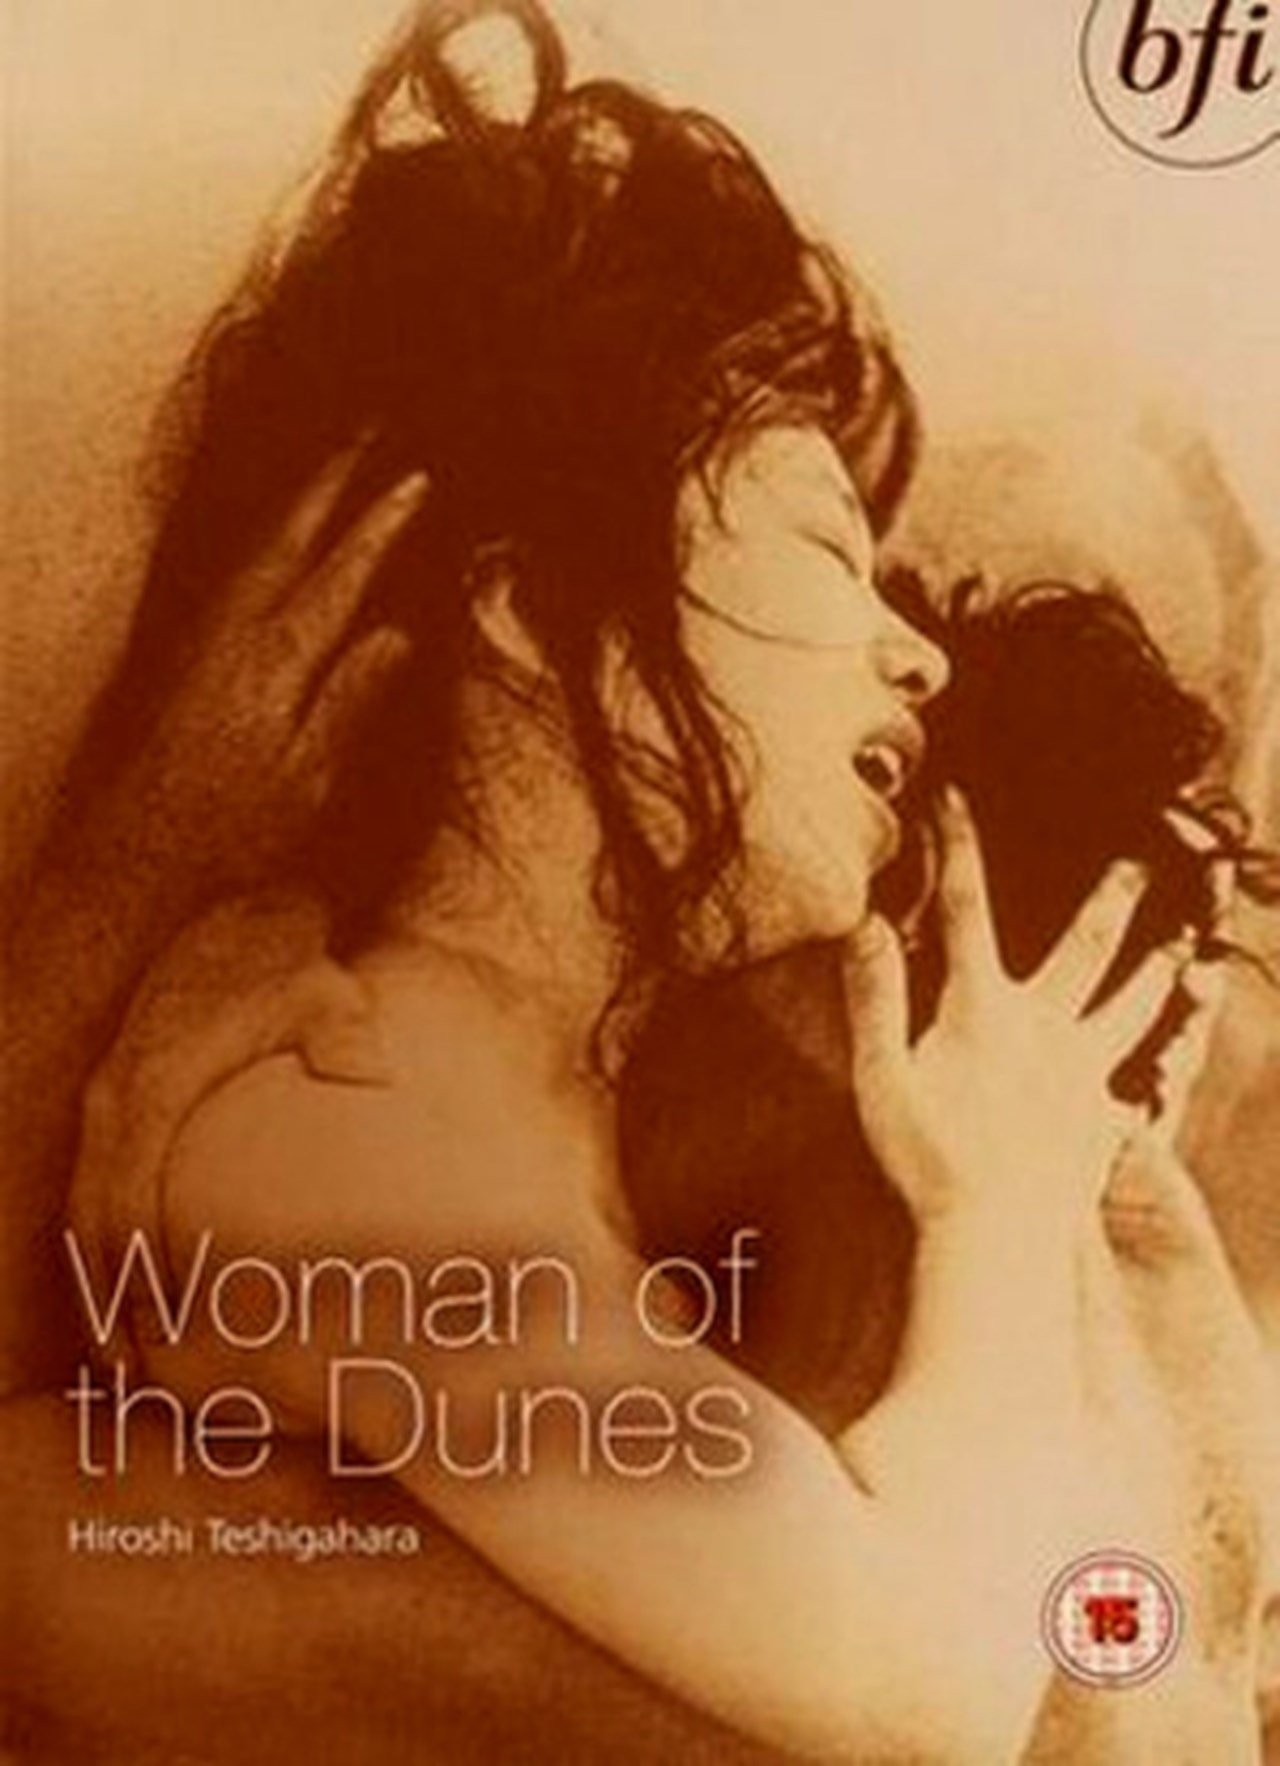 Woman of the Dunes - 1